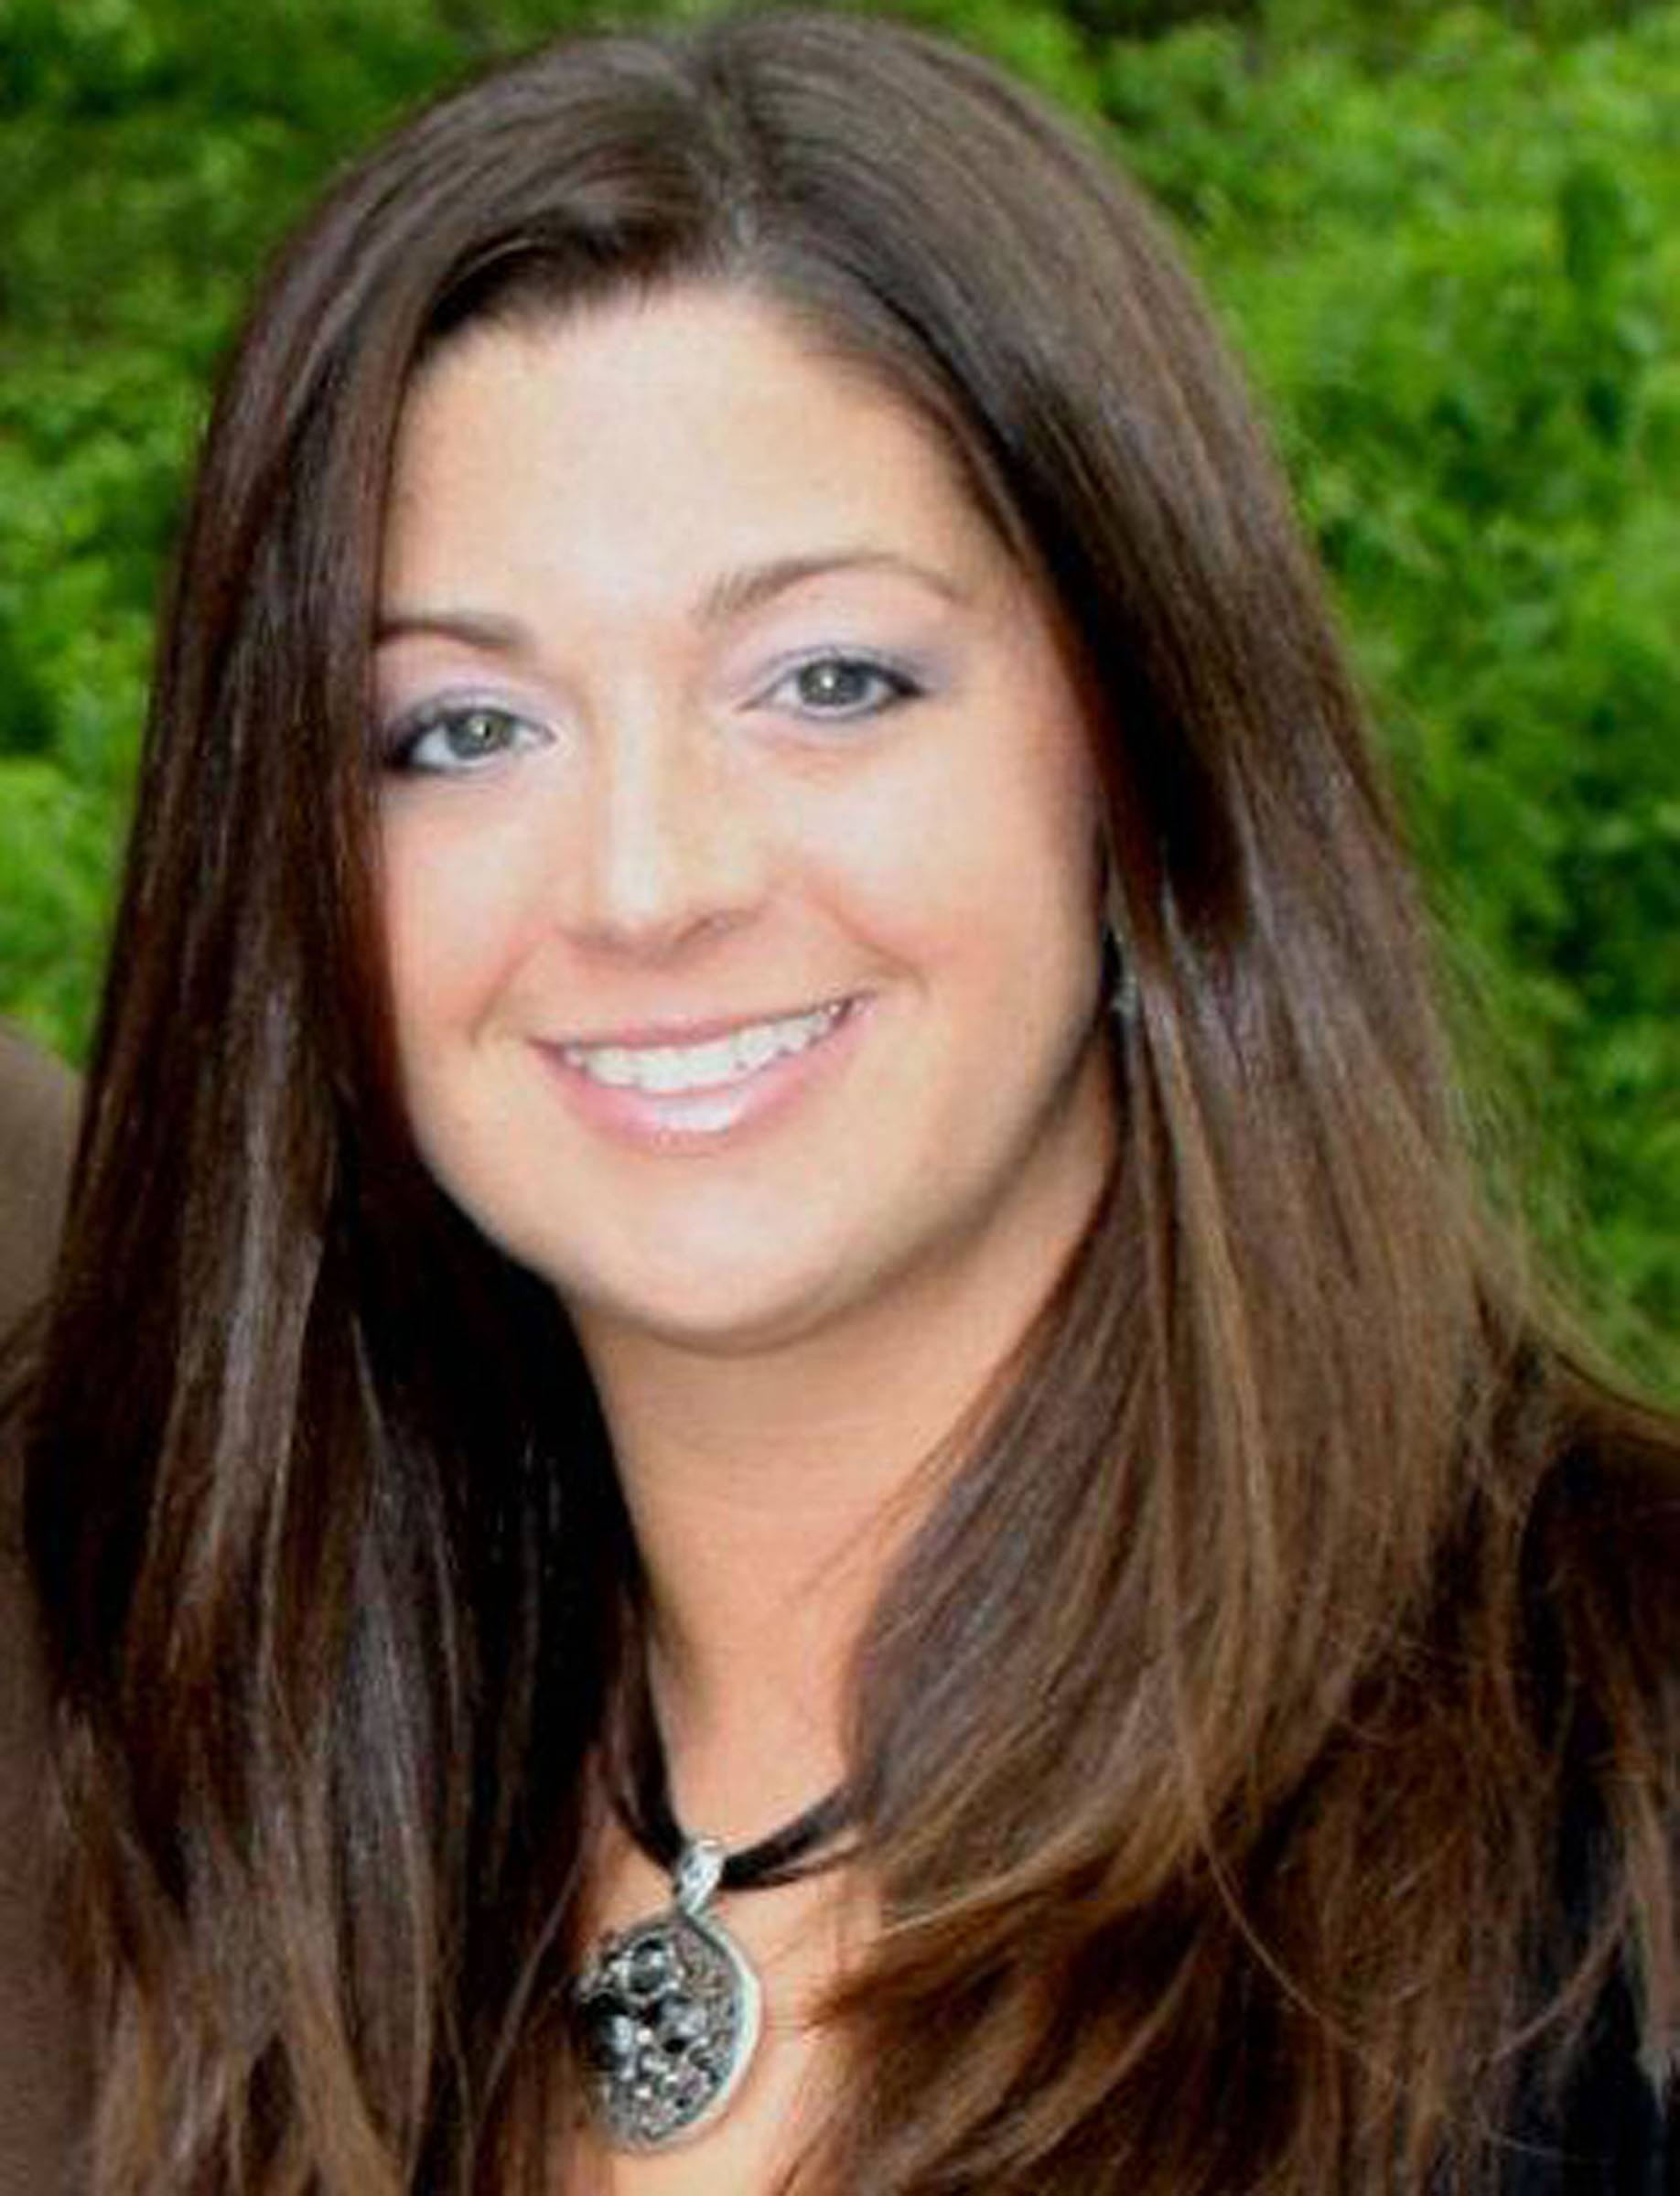 Kari Miller has recently been promoted from Marketing and Public Relations Manager to Director of Marketing and Public Relations.